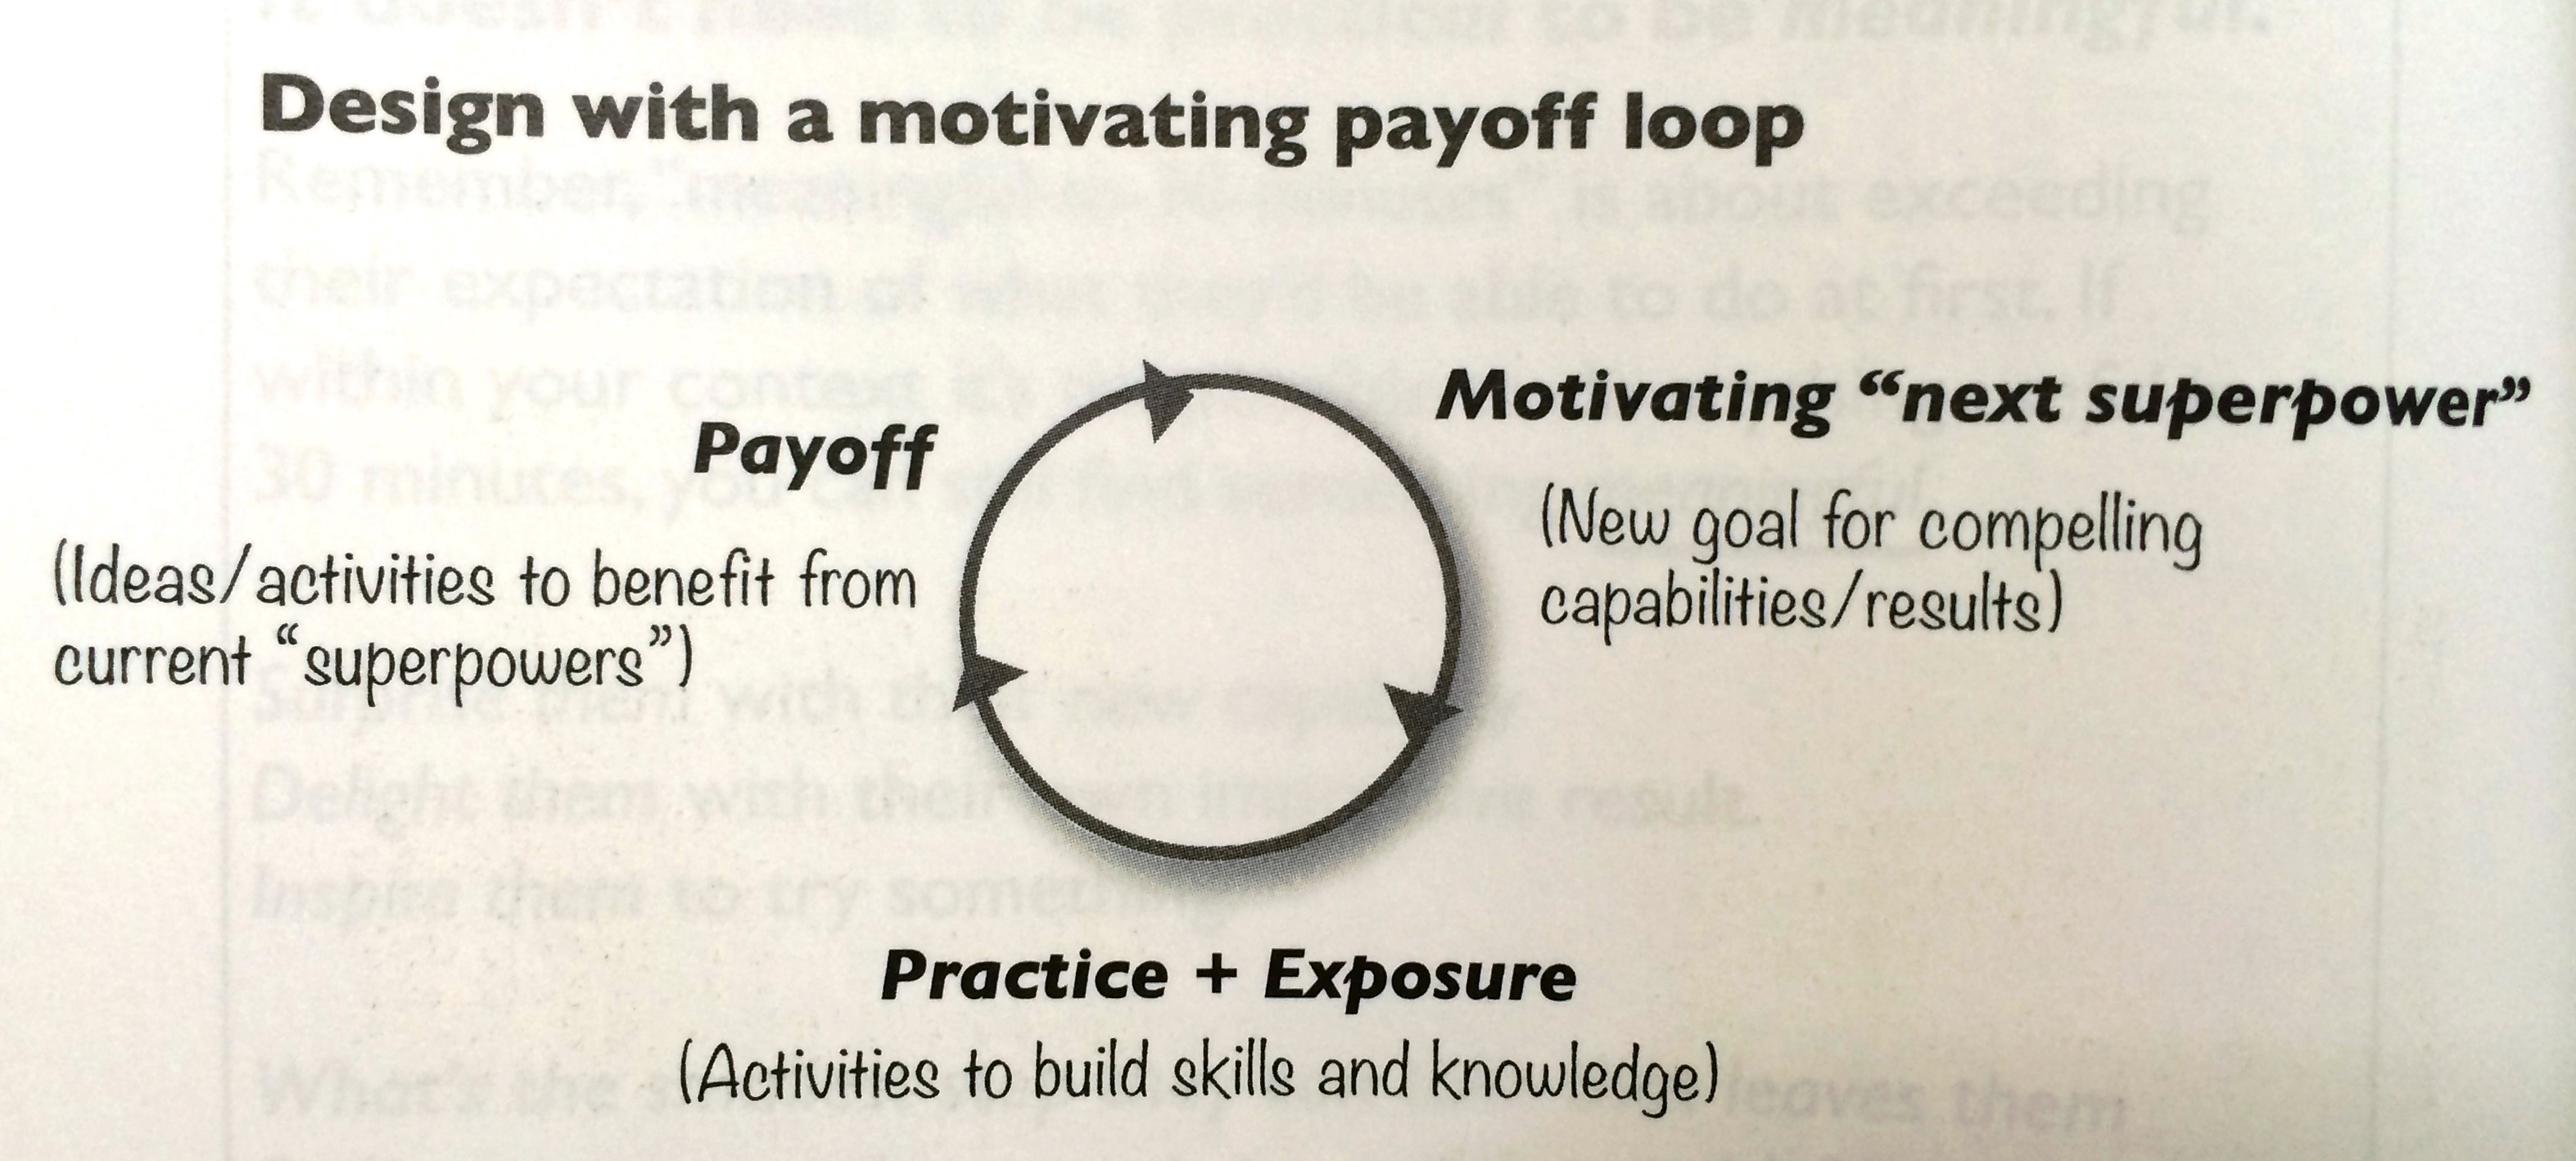 motivating payoff loop for badass users